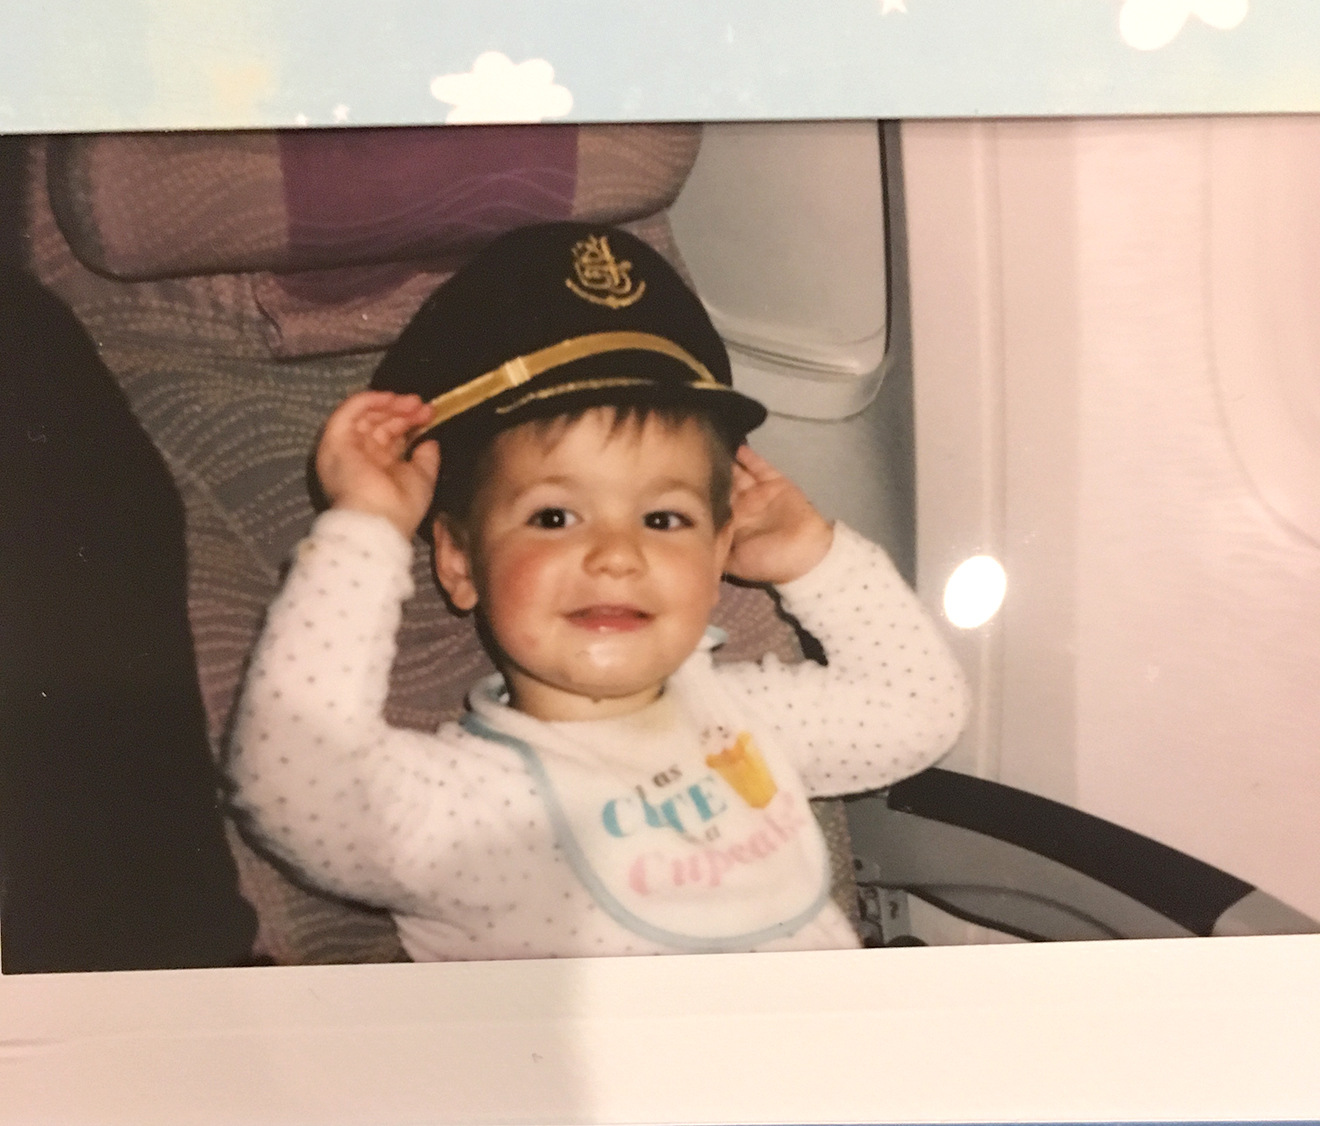 Our wonderful flight attendants on Emirates grabbed this Polaroid of Jack in the pilot's hat